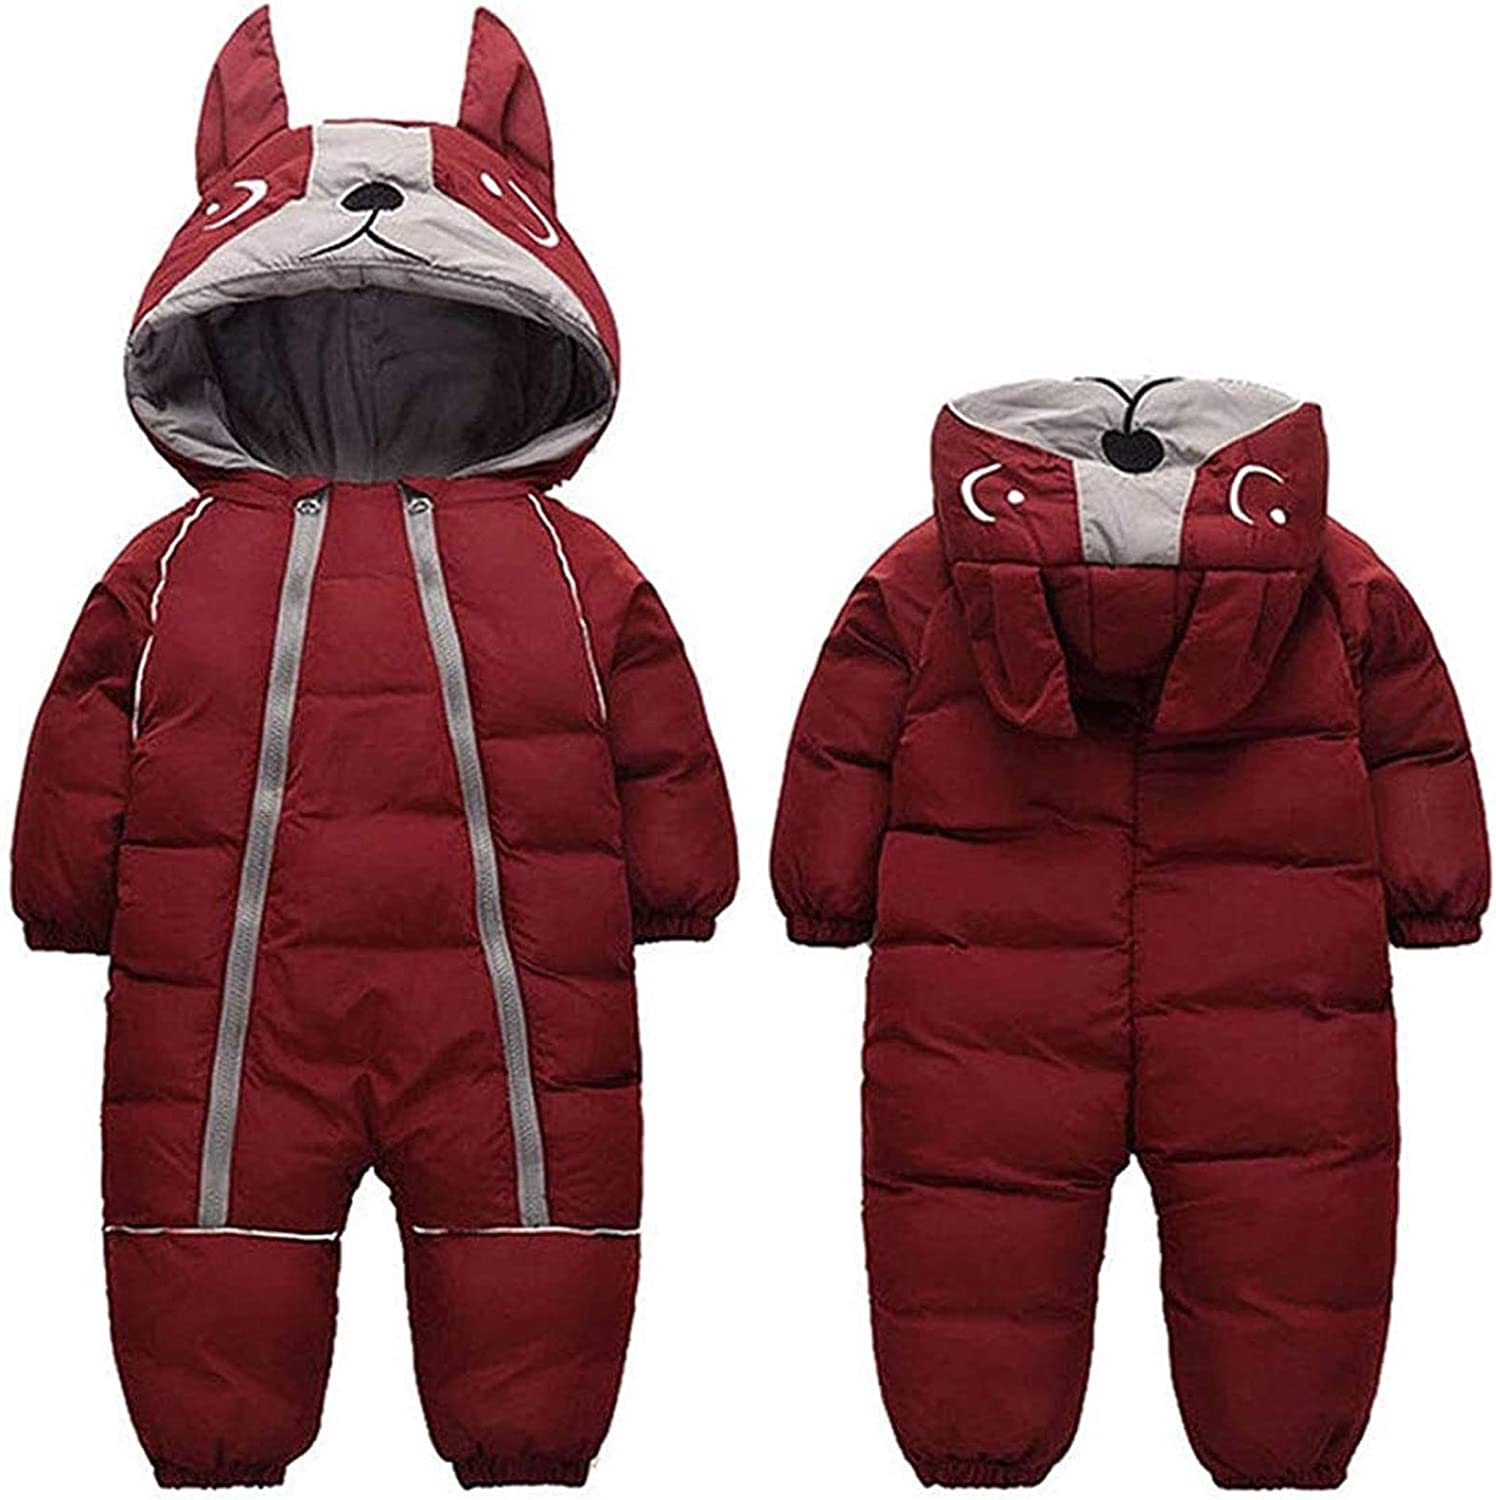 NYKK Outdoor Clothing Genuine Ski Suits Baby Dedication Boy Winter Infant Thic Girl